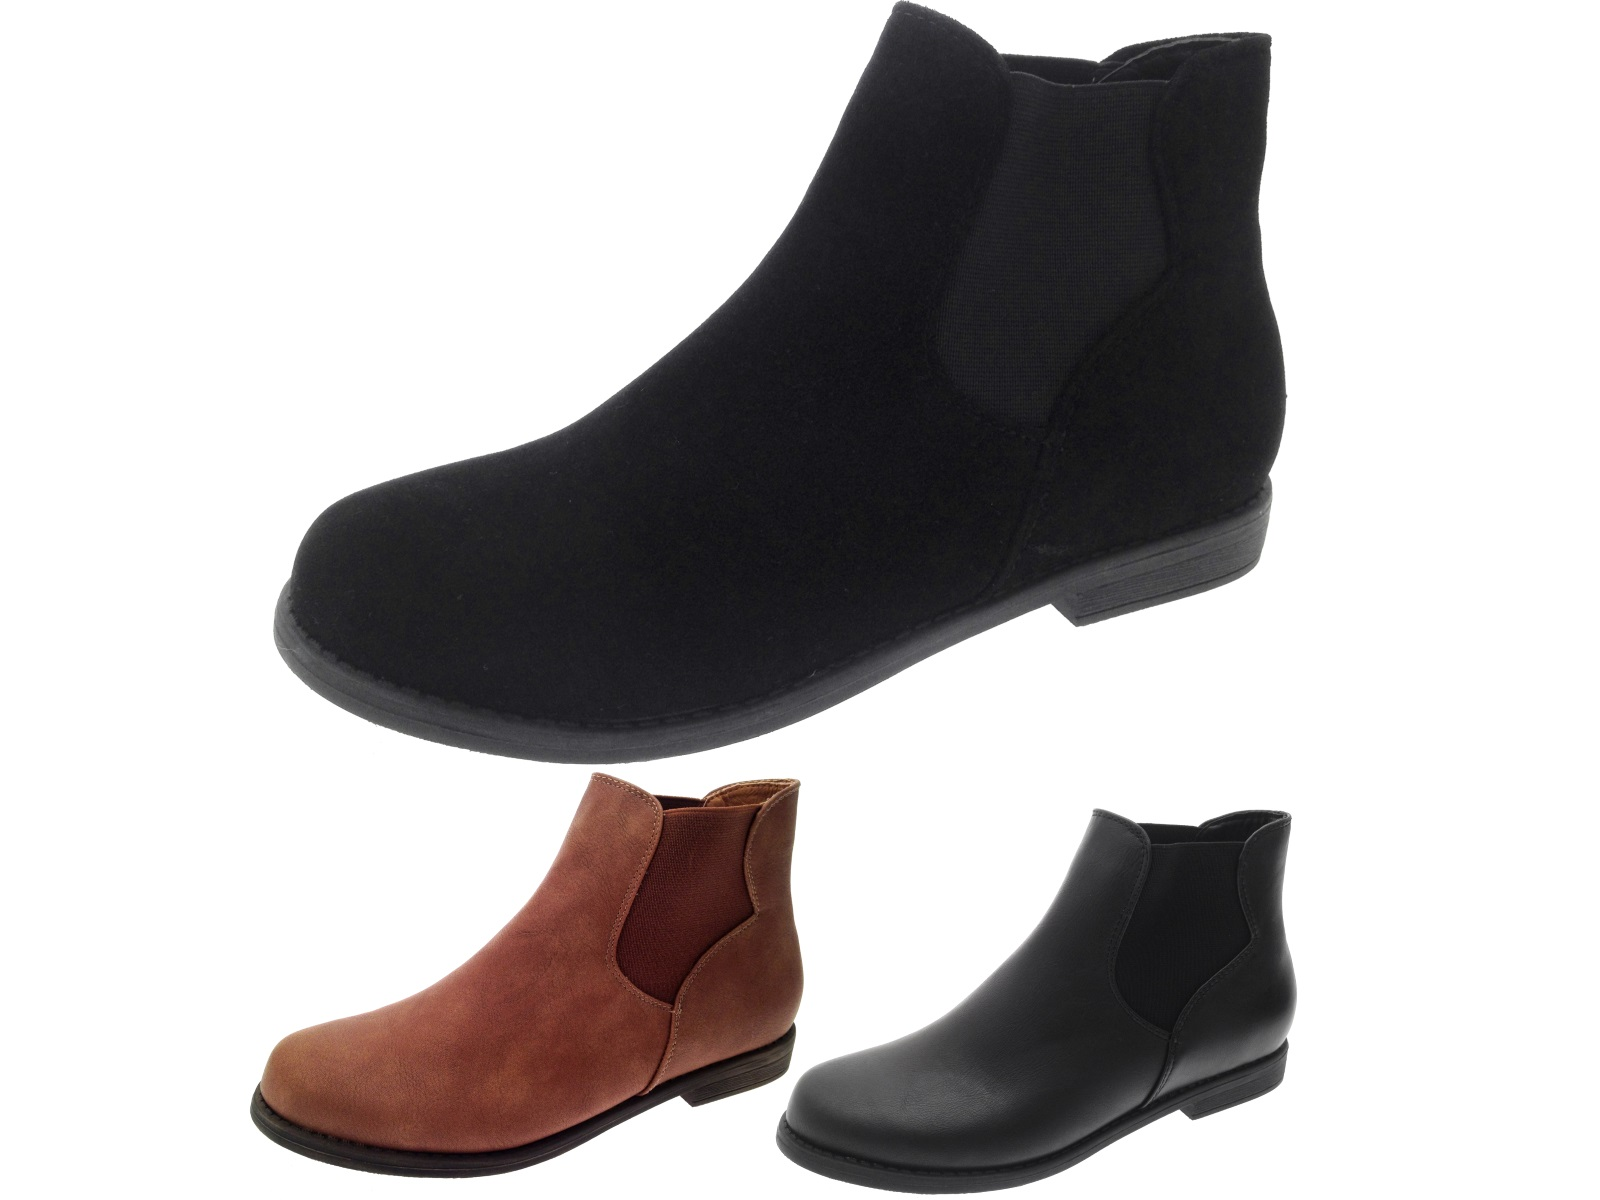 Simple Womens Chelsea Boots For Springsummer ASOS AVA Suede Pointed Chelsea Boots &1635500 AVA Suede Pointed Chelsea Boots Are Available From ASOS In Sizes Uk 3 8 And Come In At A Reasonable Price At &1635500 I Love The Colour